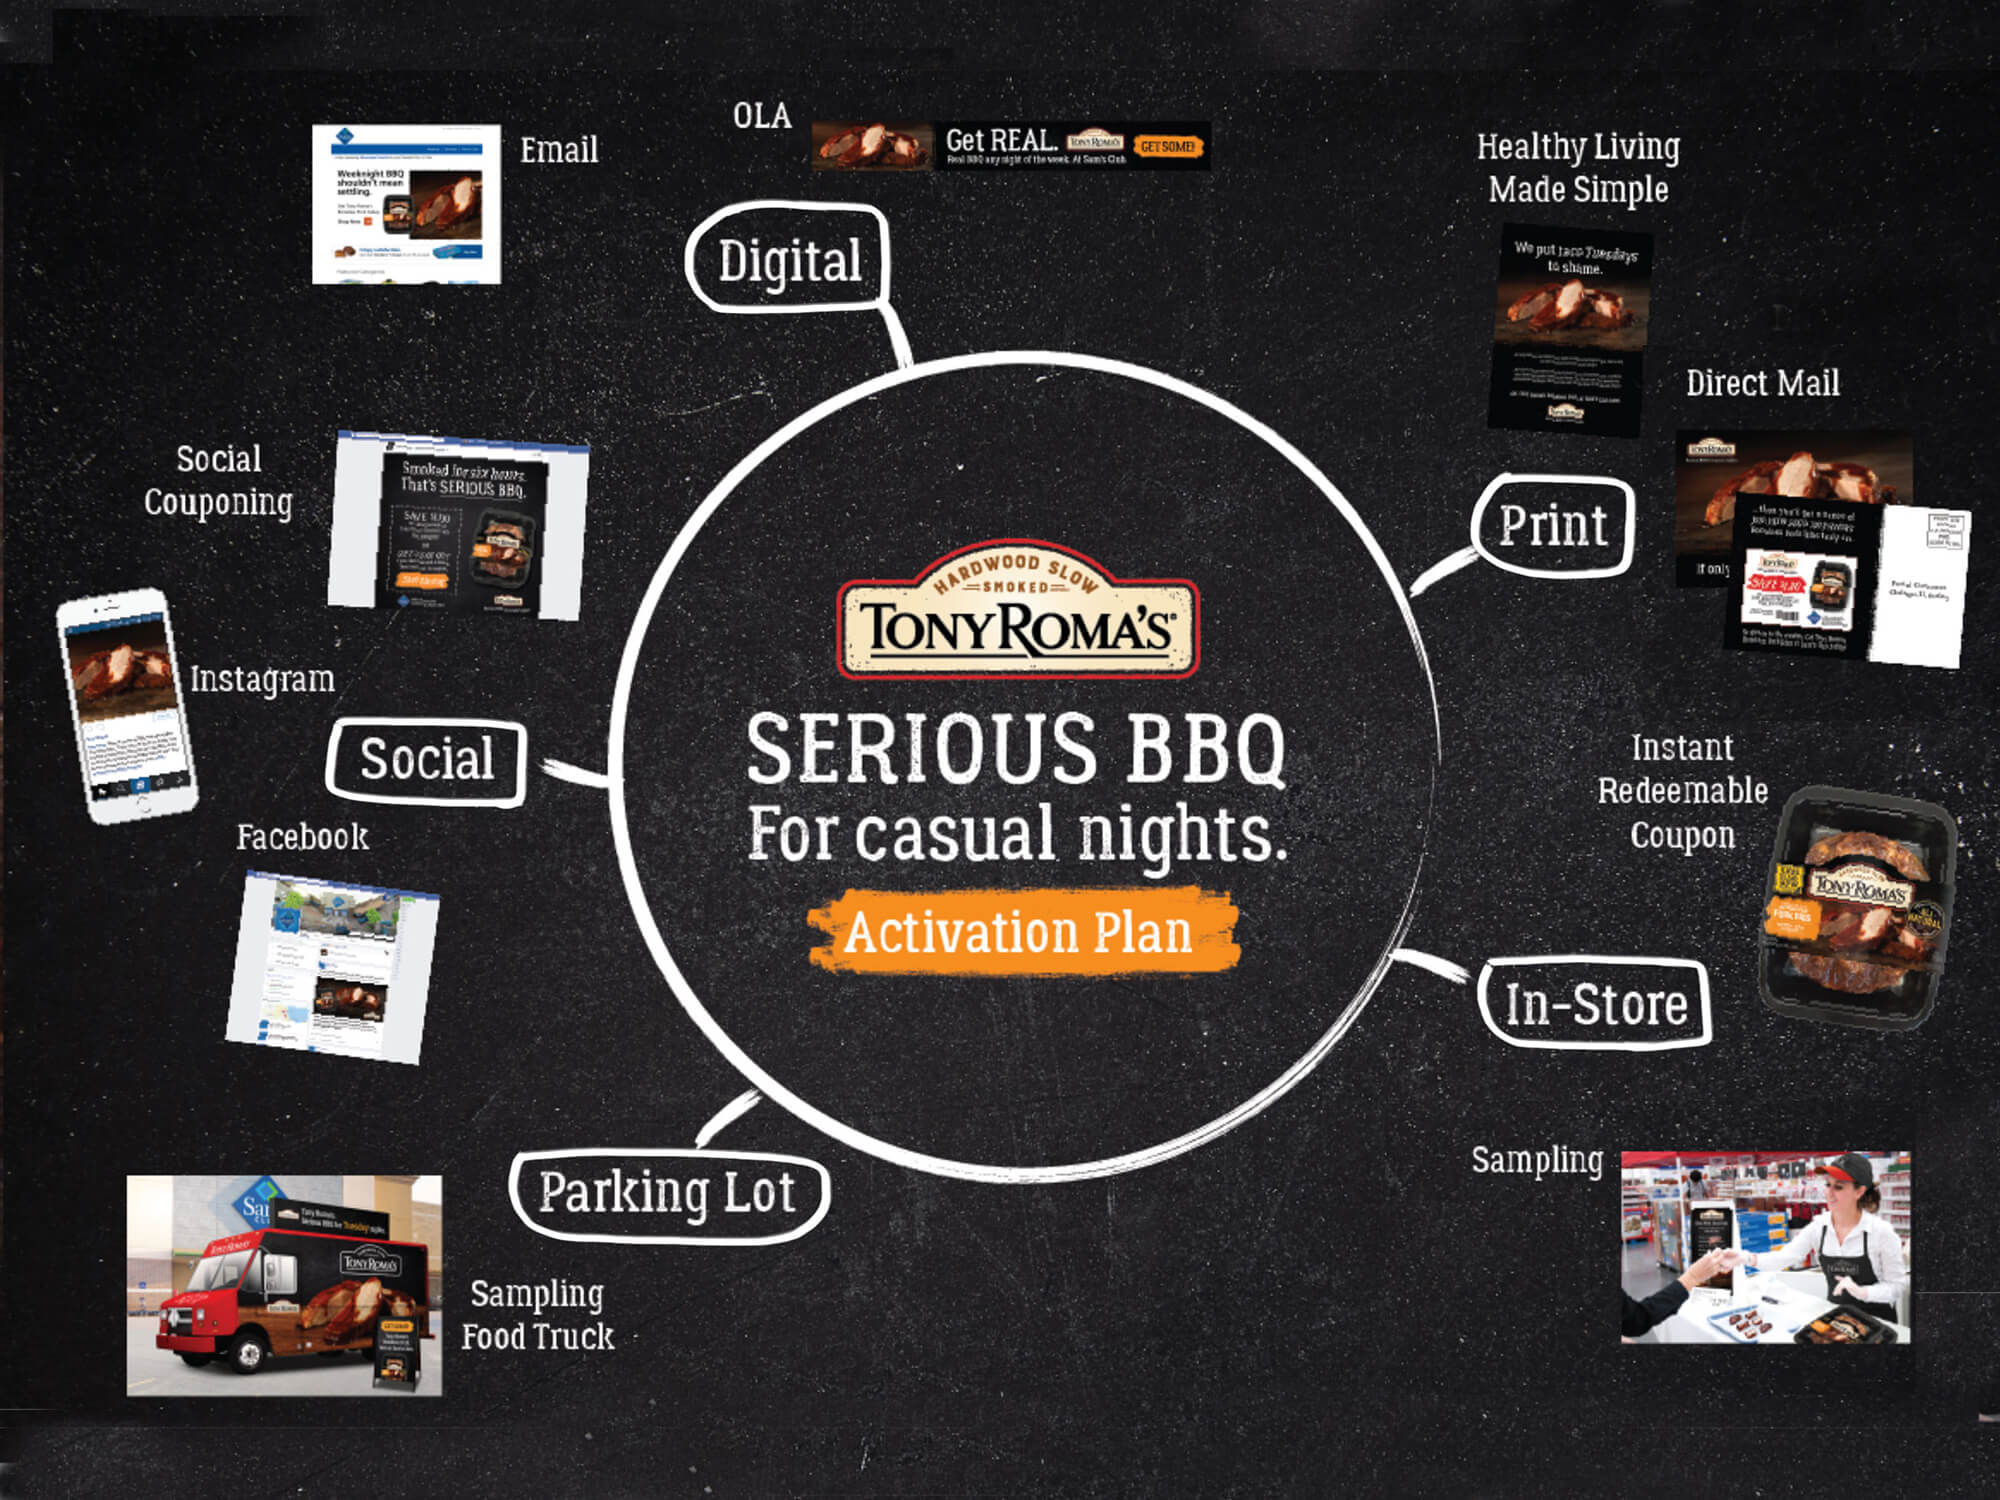 The Serious BBQ marketing campaign was a full 360° activation including print, digital, in-store, parking lot, and social media.